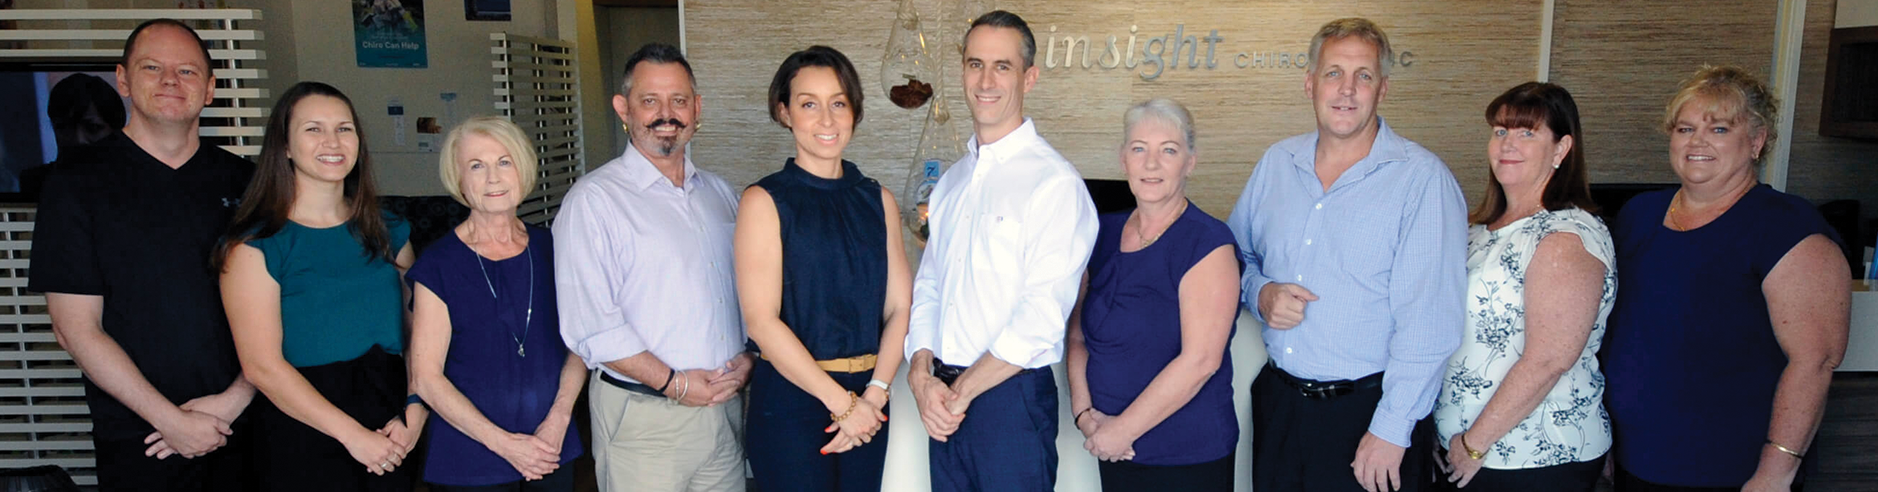 Insight Chiropractic Darwin NT team banner photo 2